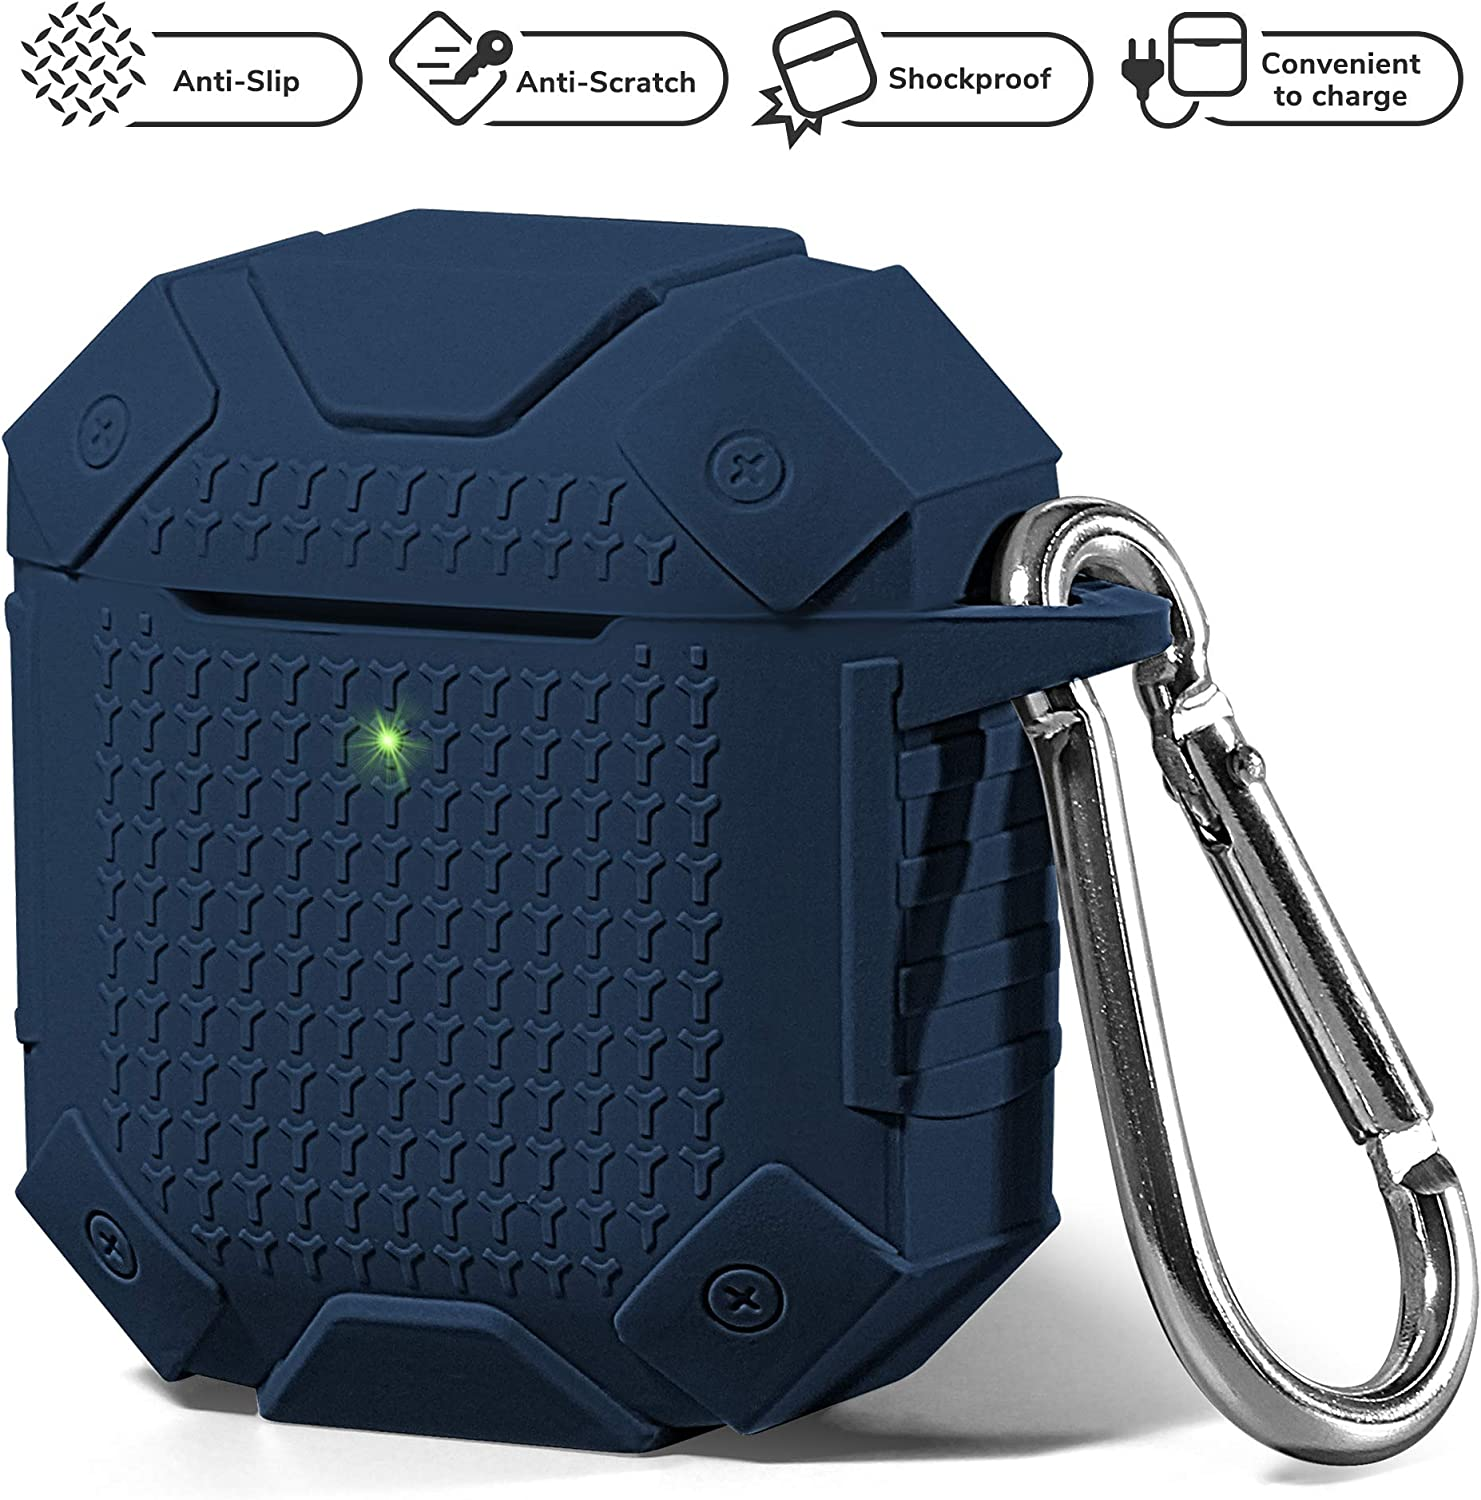 AirPods Case Accessories Kit [Front LED Visible], GMYLE Silicone Heavy Duty Armor Protective Shockproof Airpod Cover Skin with Keychain, Ear Hook, Magnetic Strap for Apple AirPod 1 & 2 – Navy Blue